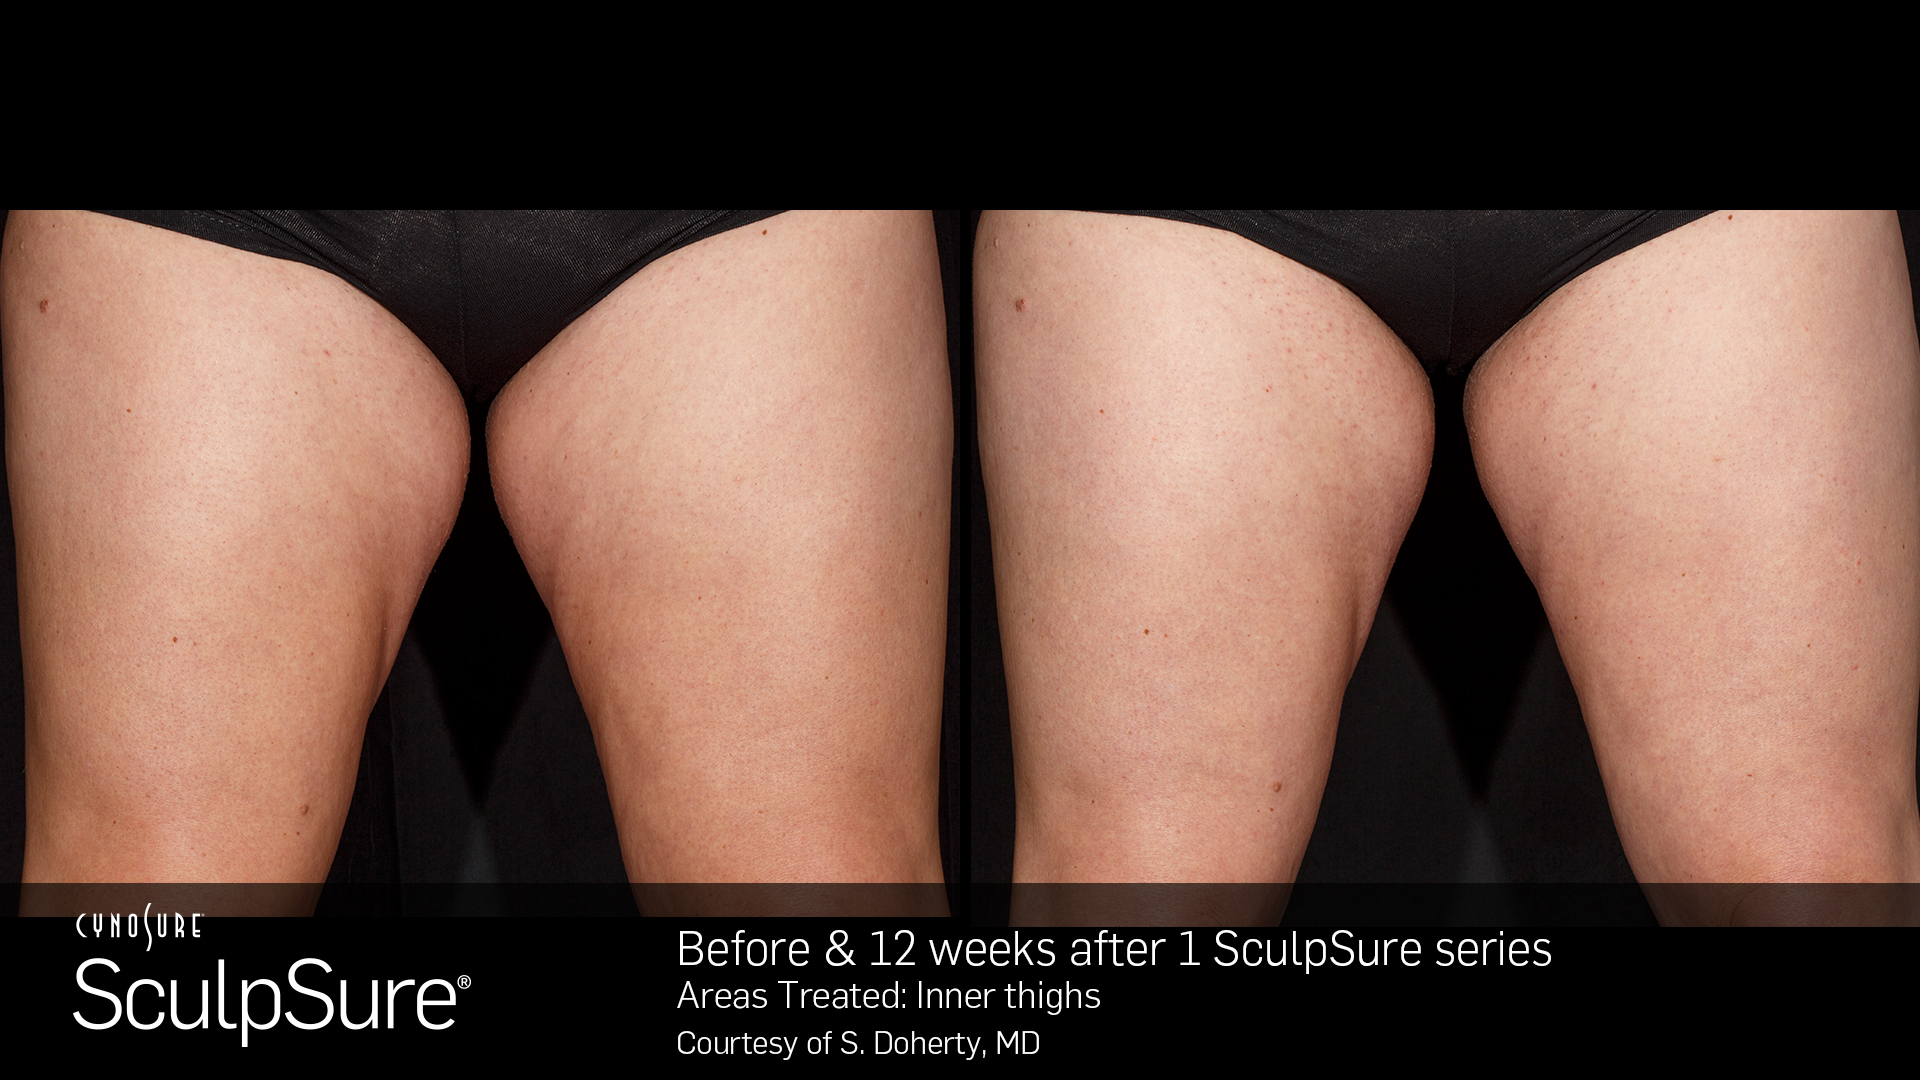 BA_SculpSure_S.Doherty_InnerThigh_1tx_12weeks_19_SM